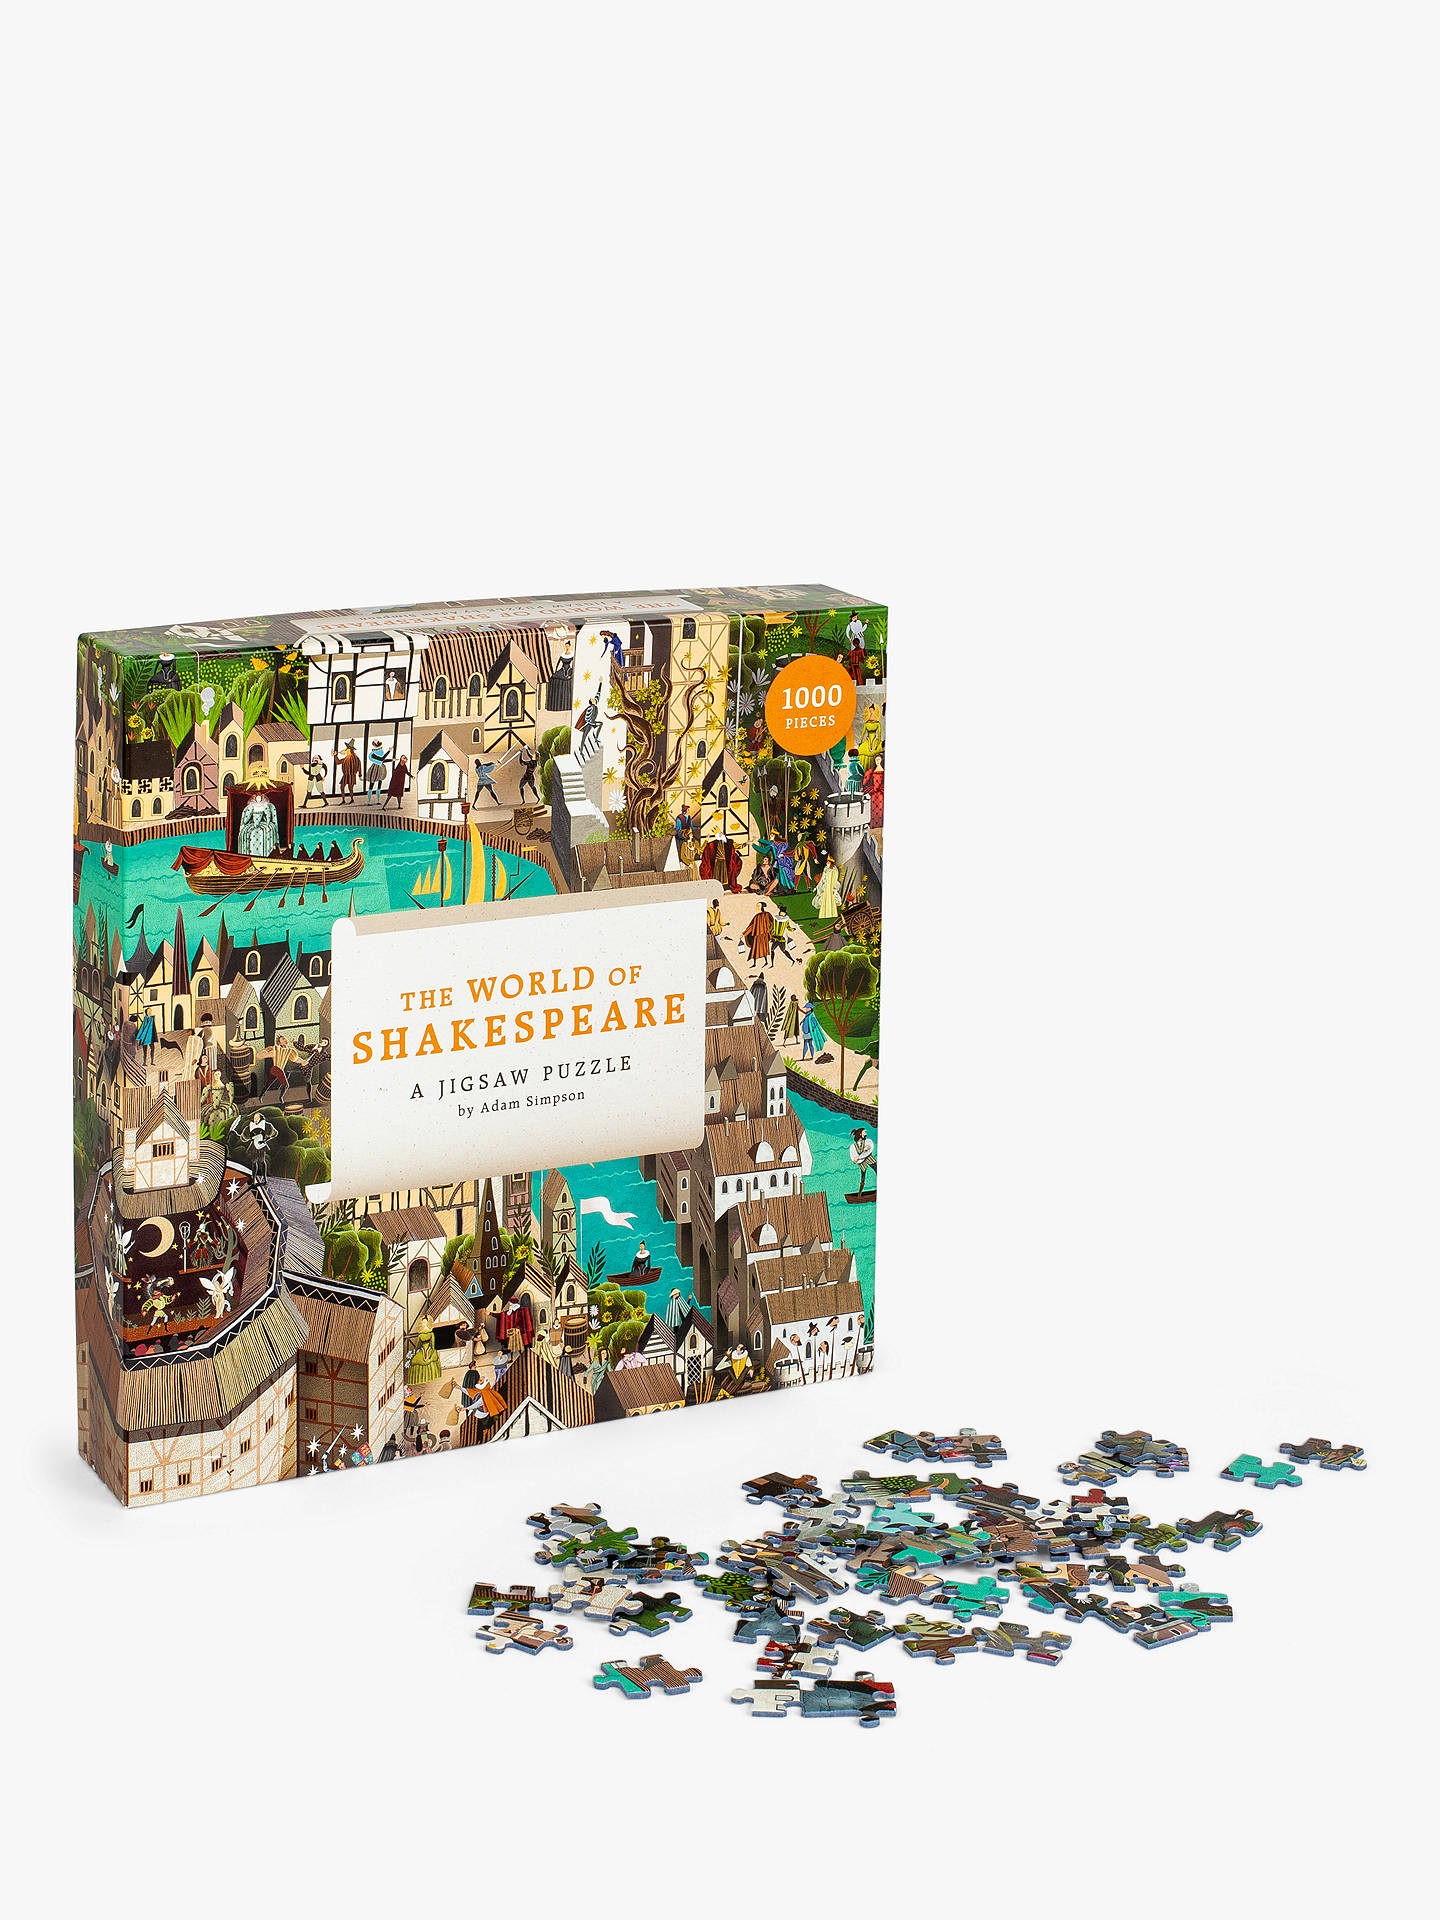 Gallery pieces become online jigsaw